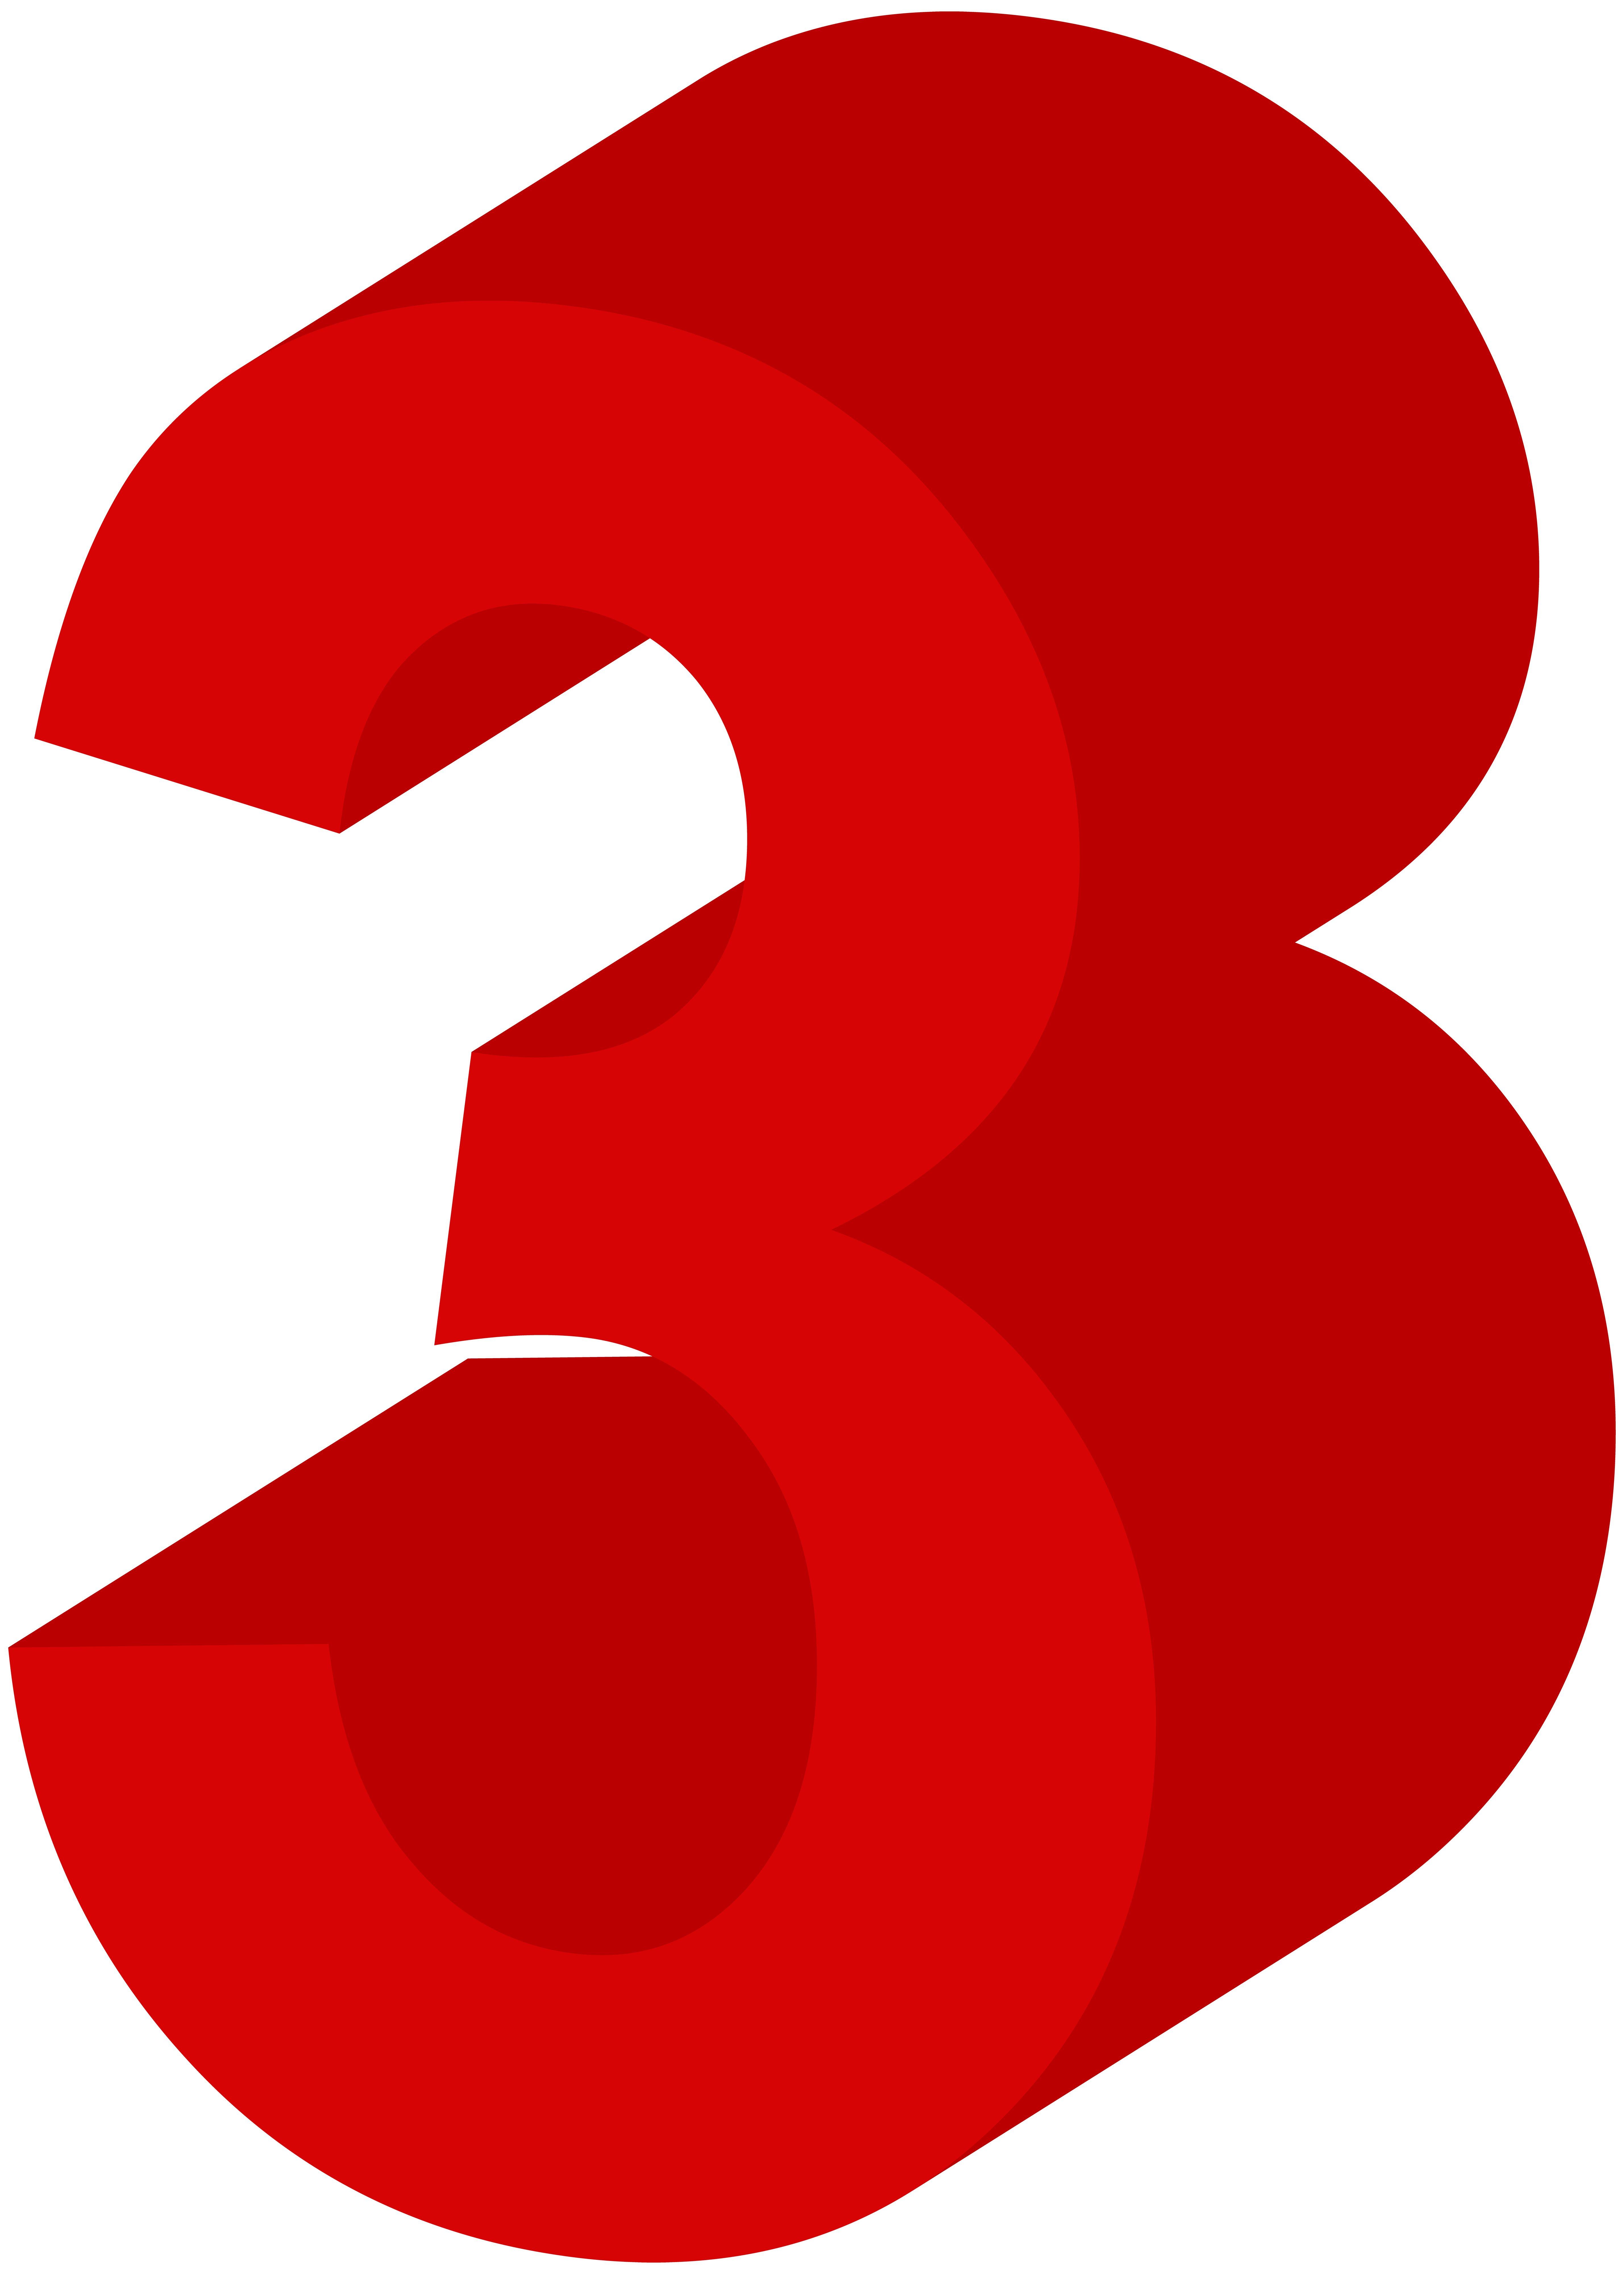 number three red png clip art image [ 5715 x 8000 Pixel ]